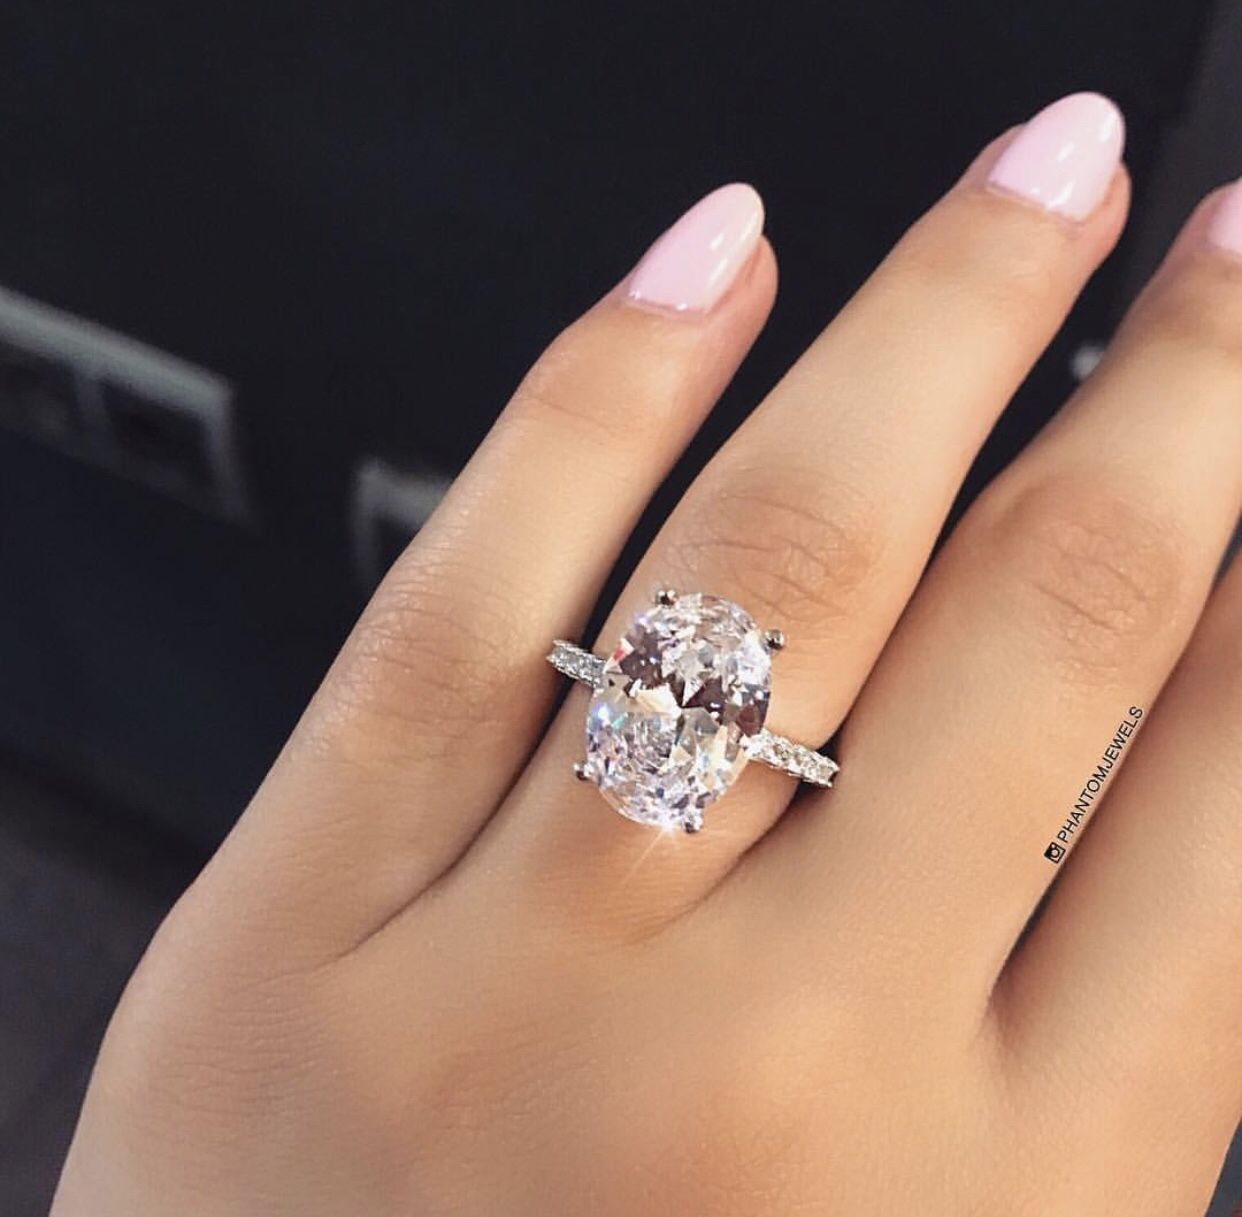 What a diamond | Wedding Rings We Adore! | Pinterest | Diamond, Ring ...